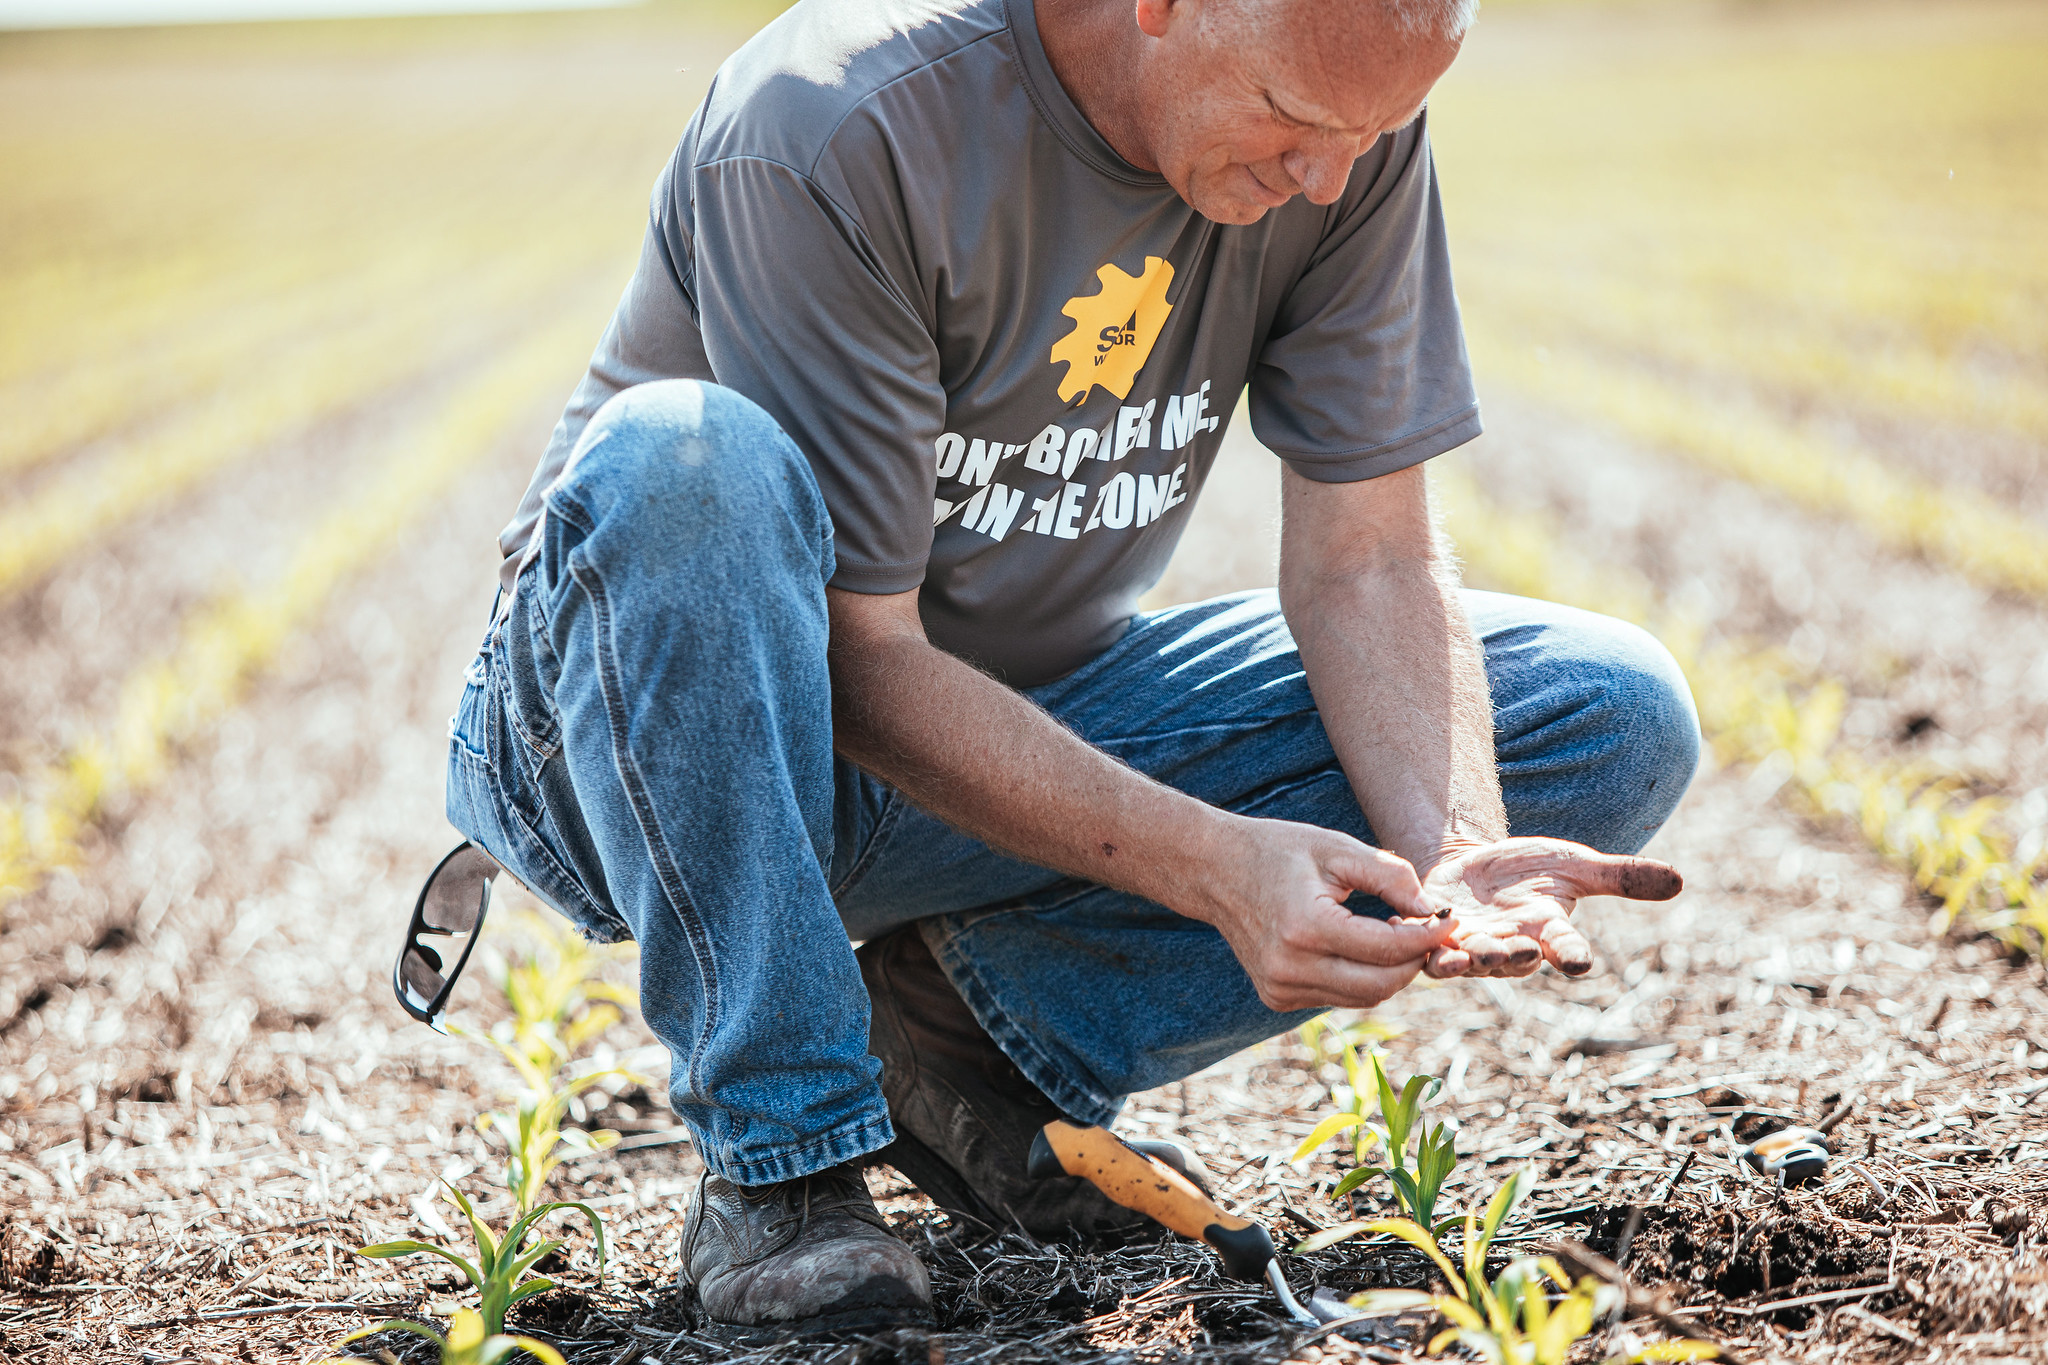 Brian Ryberg evaluating soil health